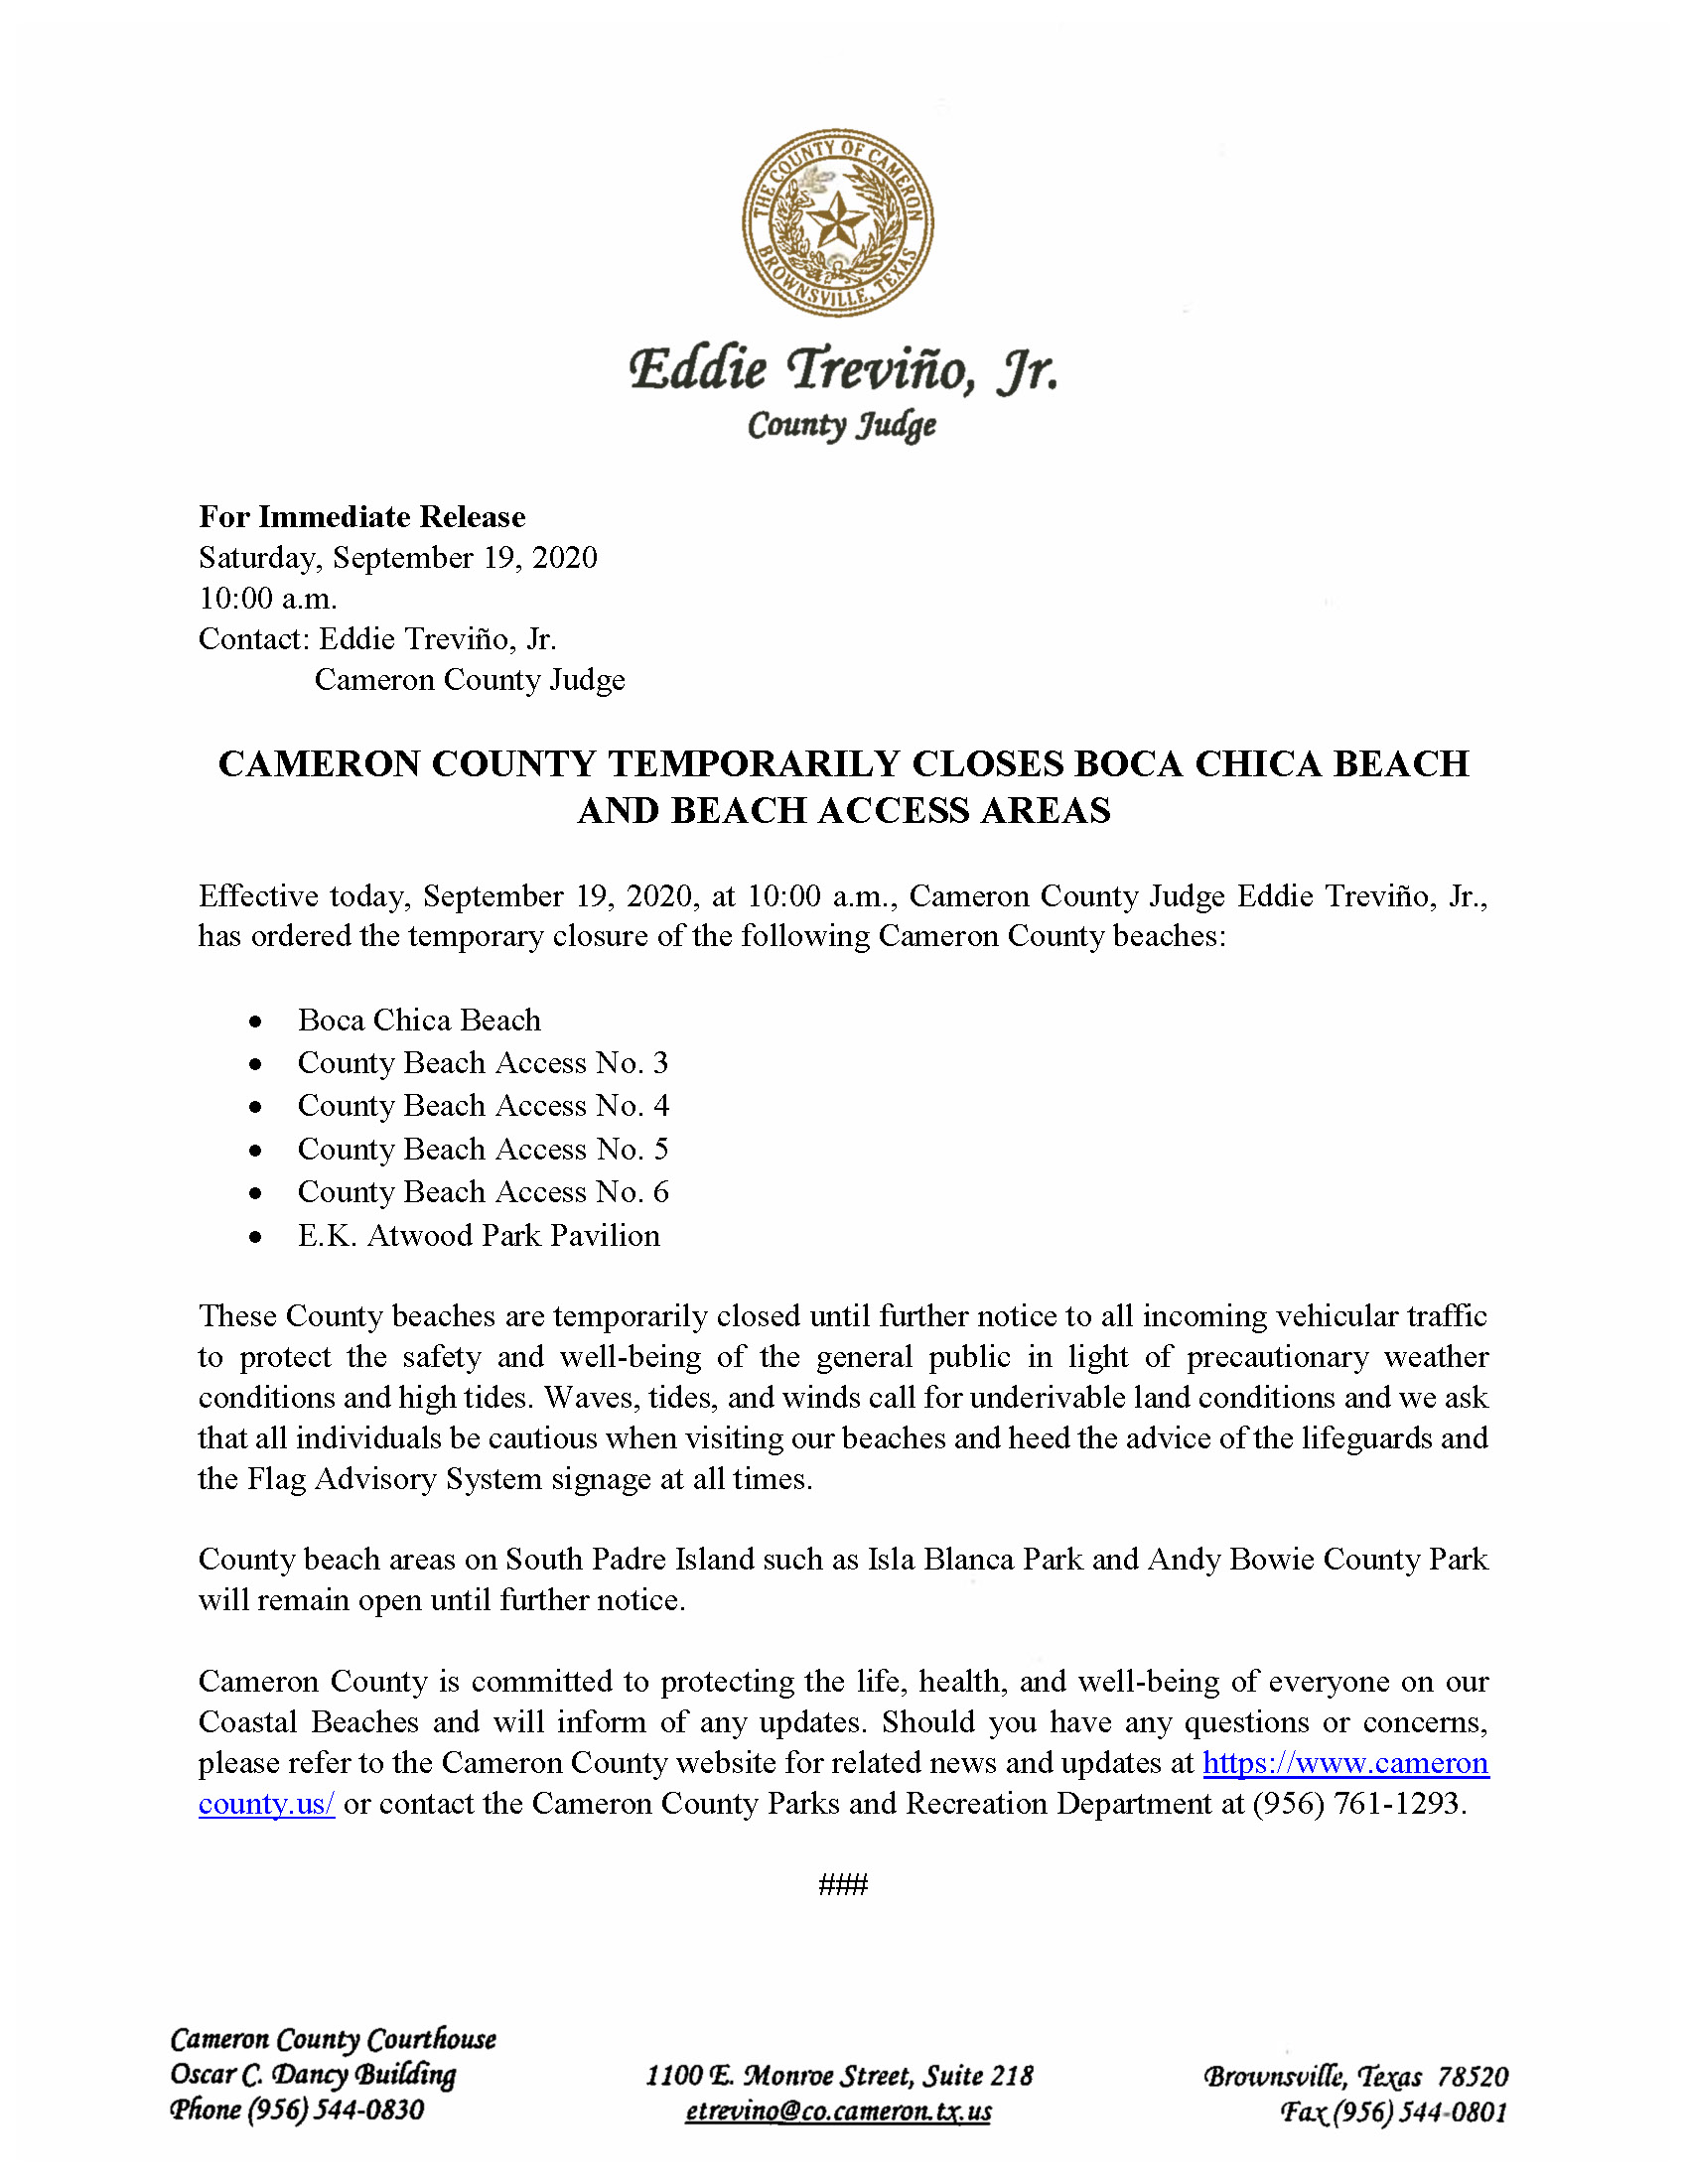 9.19.20 Closure Of County Beaches Due To Weather Conditions